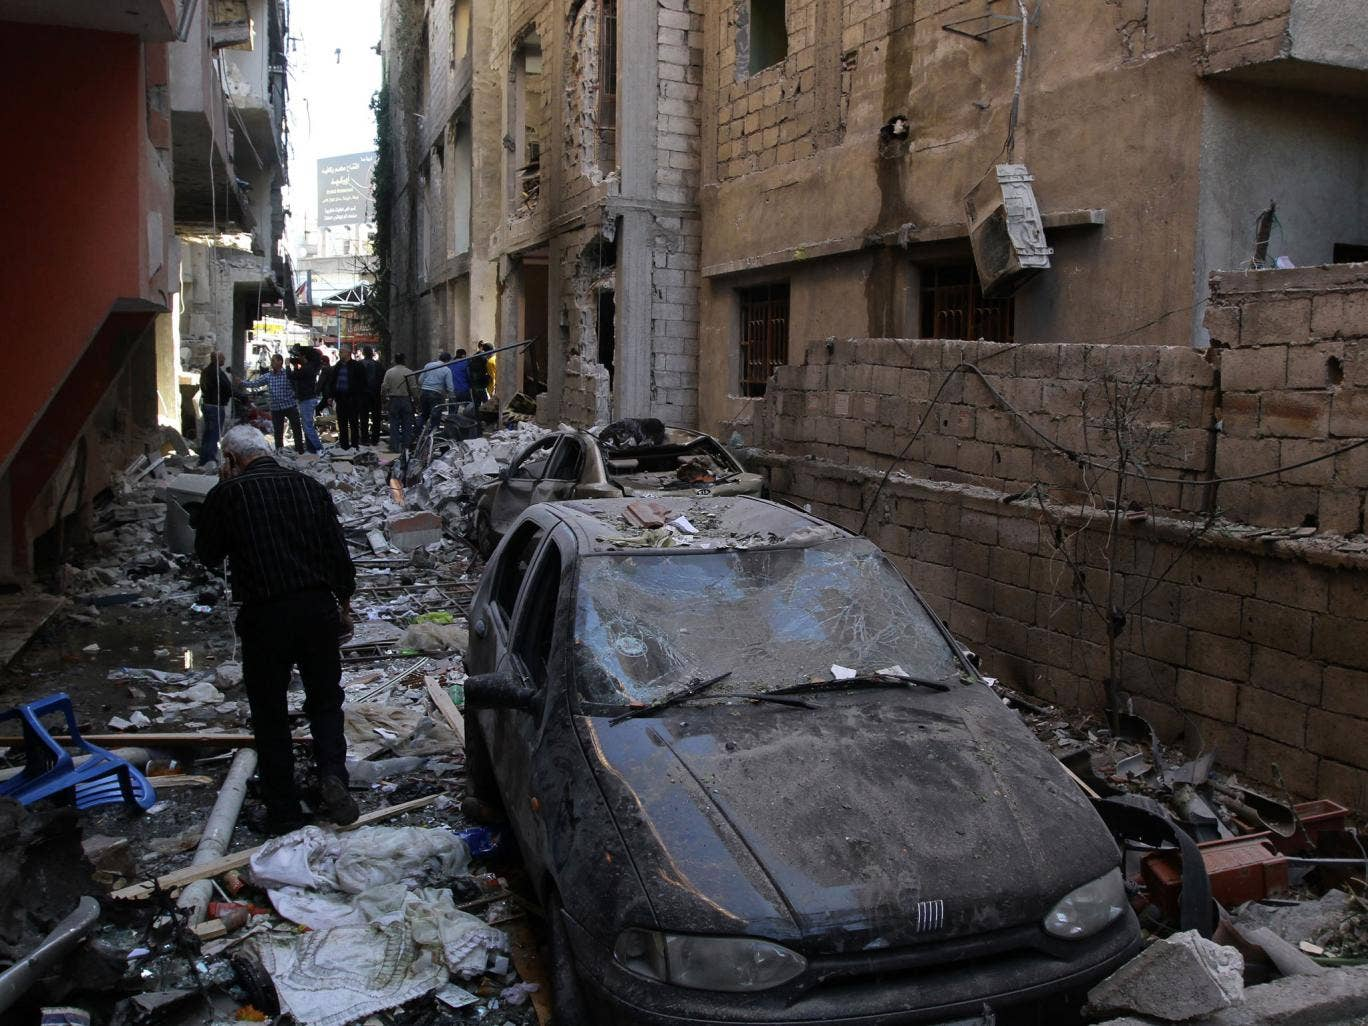 A UN panel suggests the Syrian conflict is devolving into a Sectarian battle